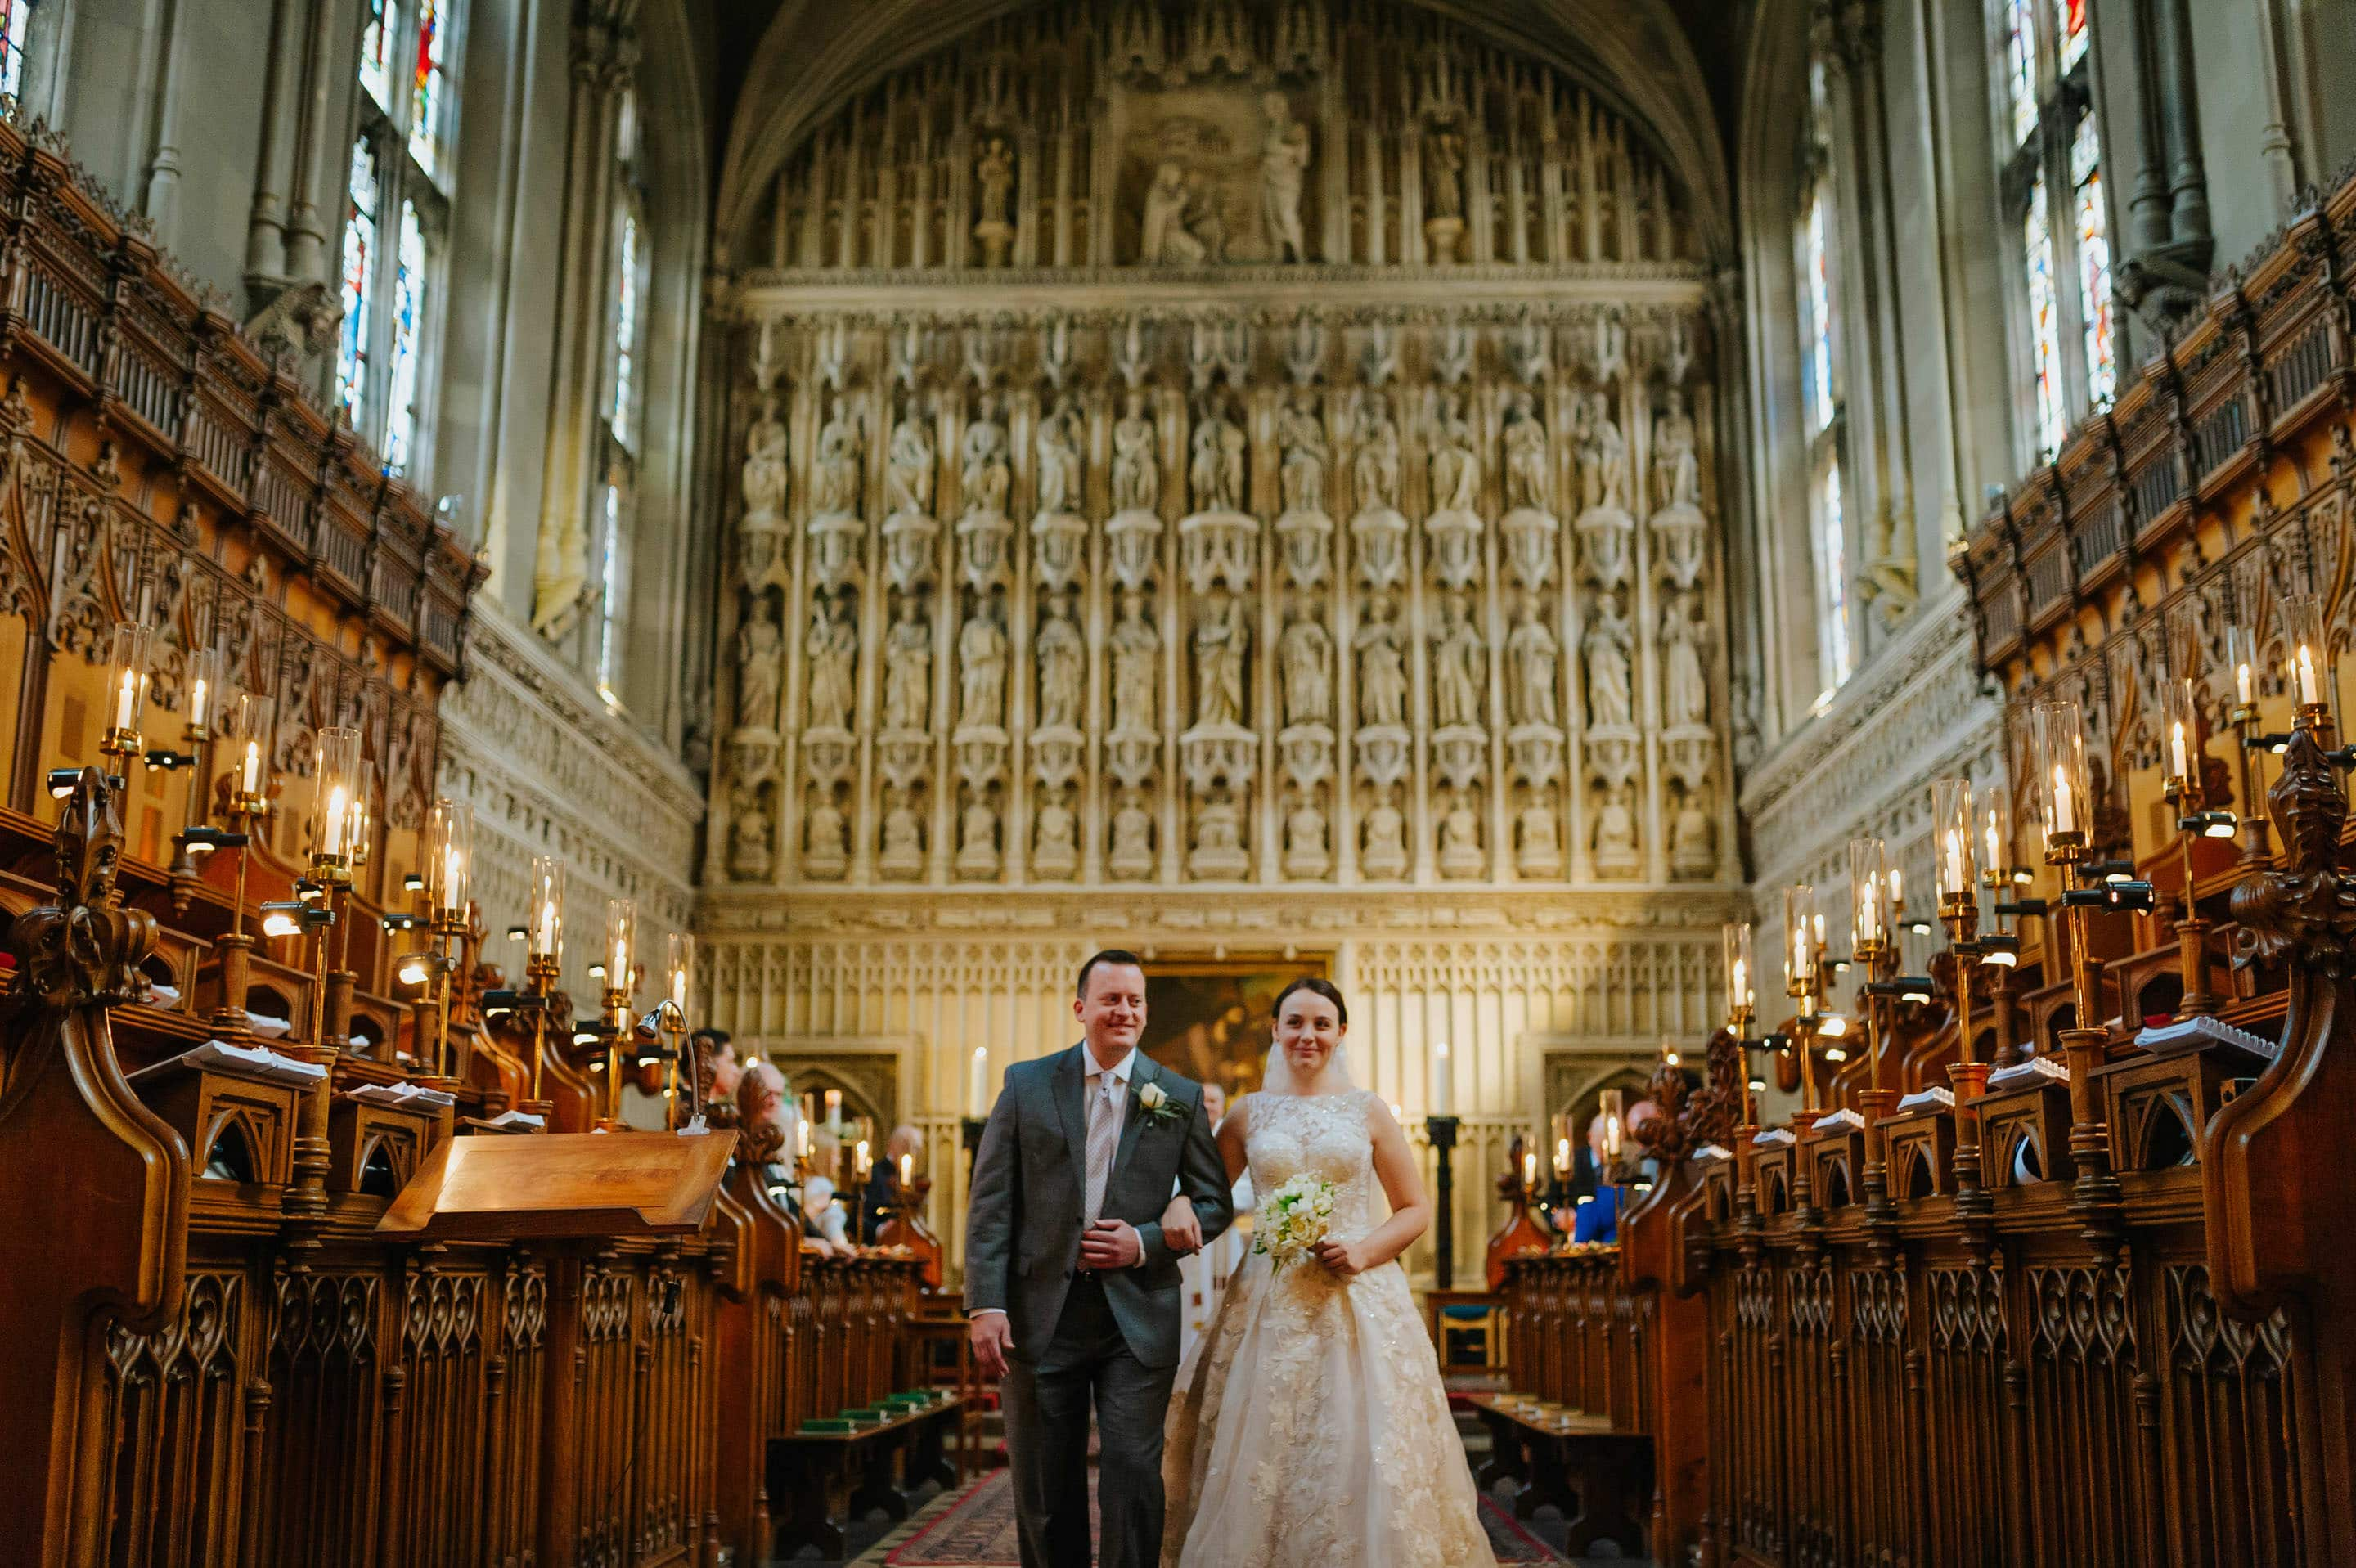 Tommie + Virginia | Wedding at Magdalen College in Oxford 17